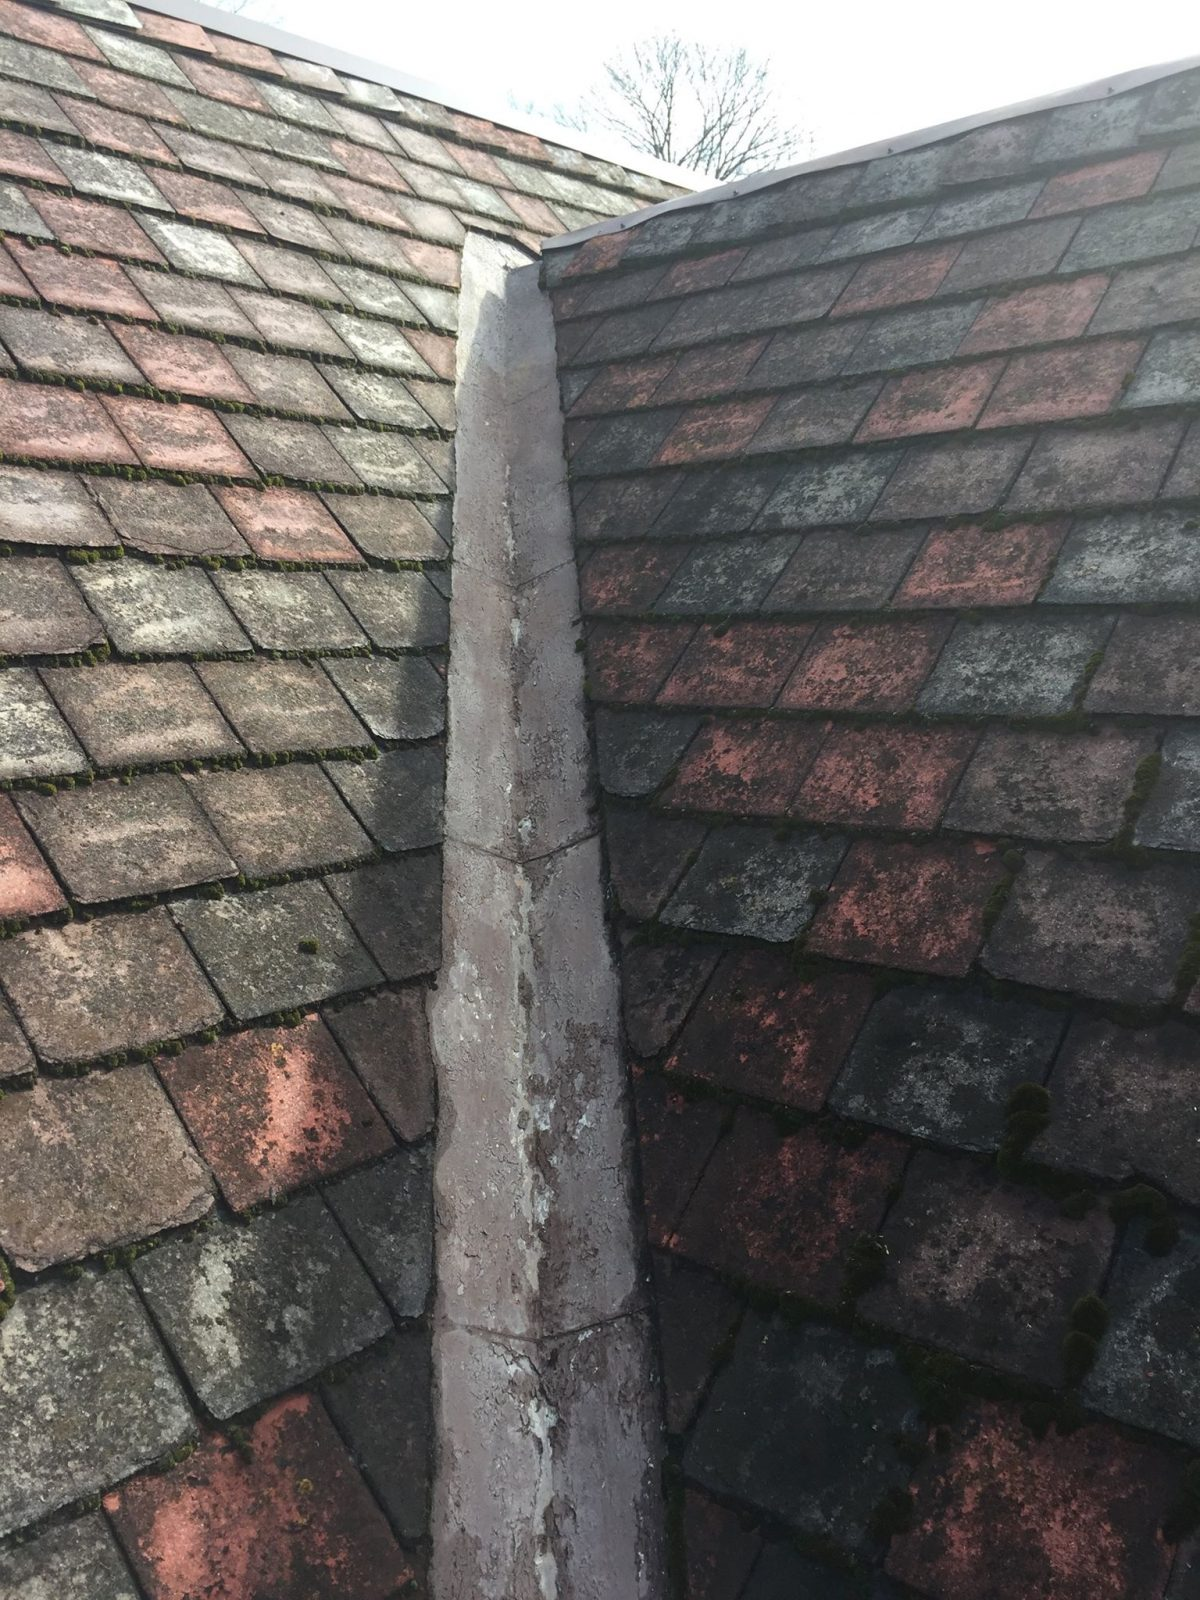 70 Year Old Asbestos Tile Roof Hkc